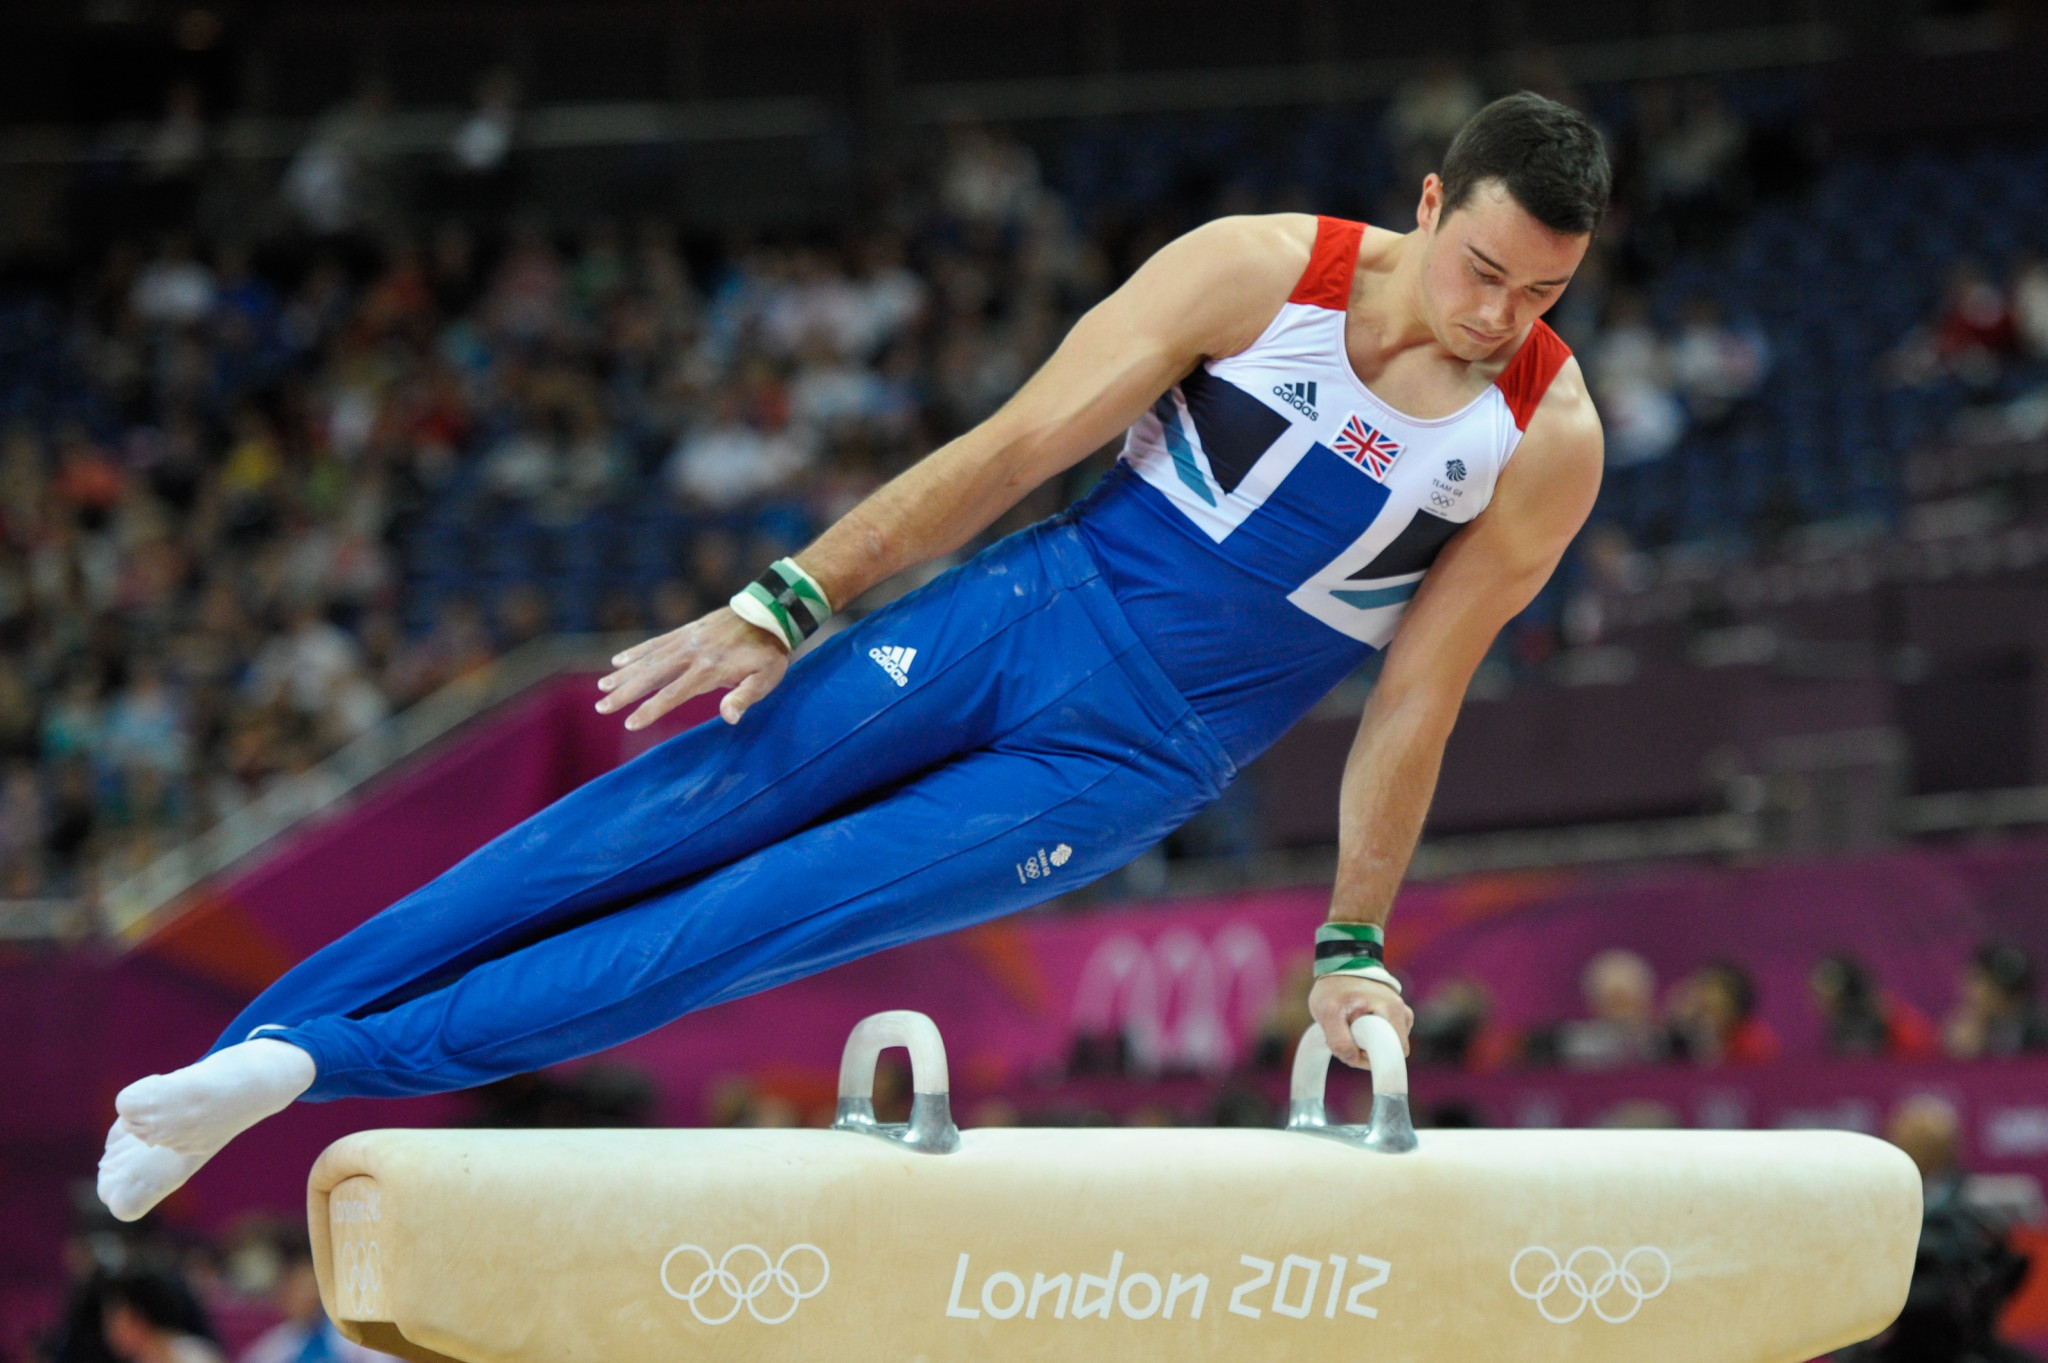 Kristian Thomas won an Olympic bronze medal at London 2012 ©EIS